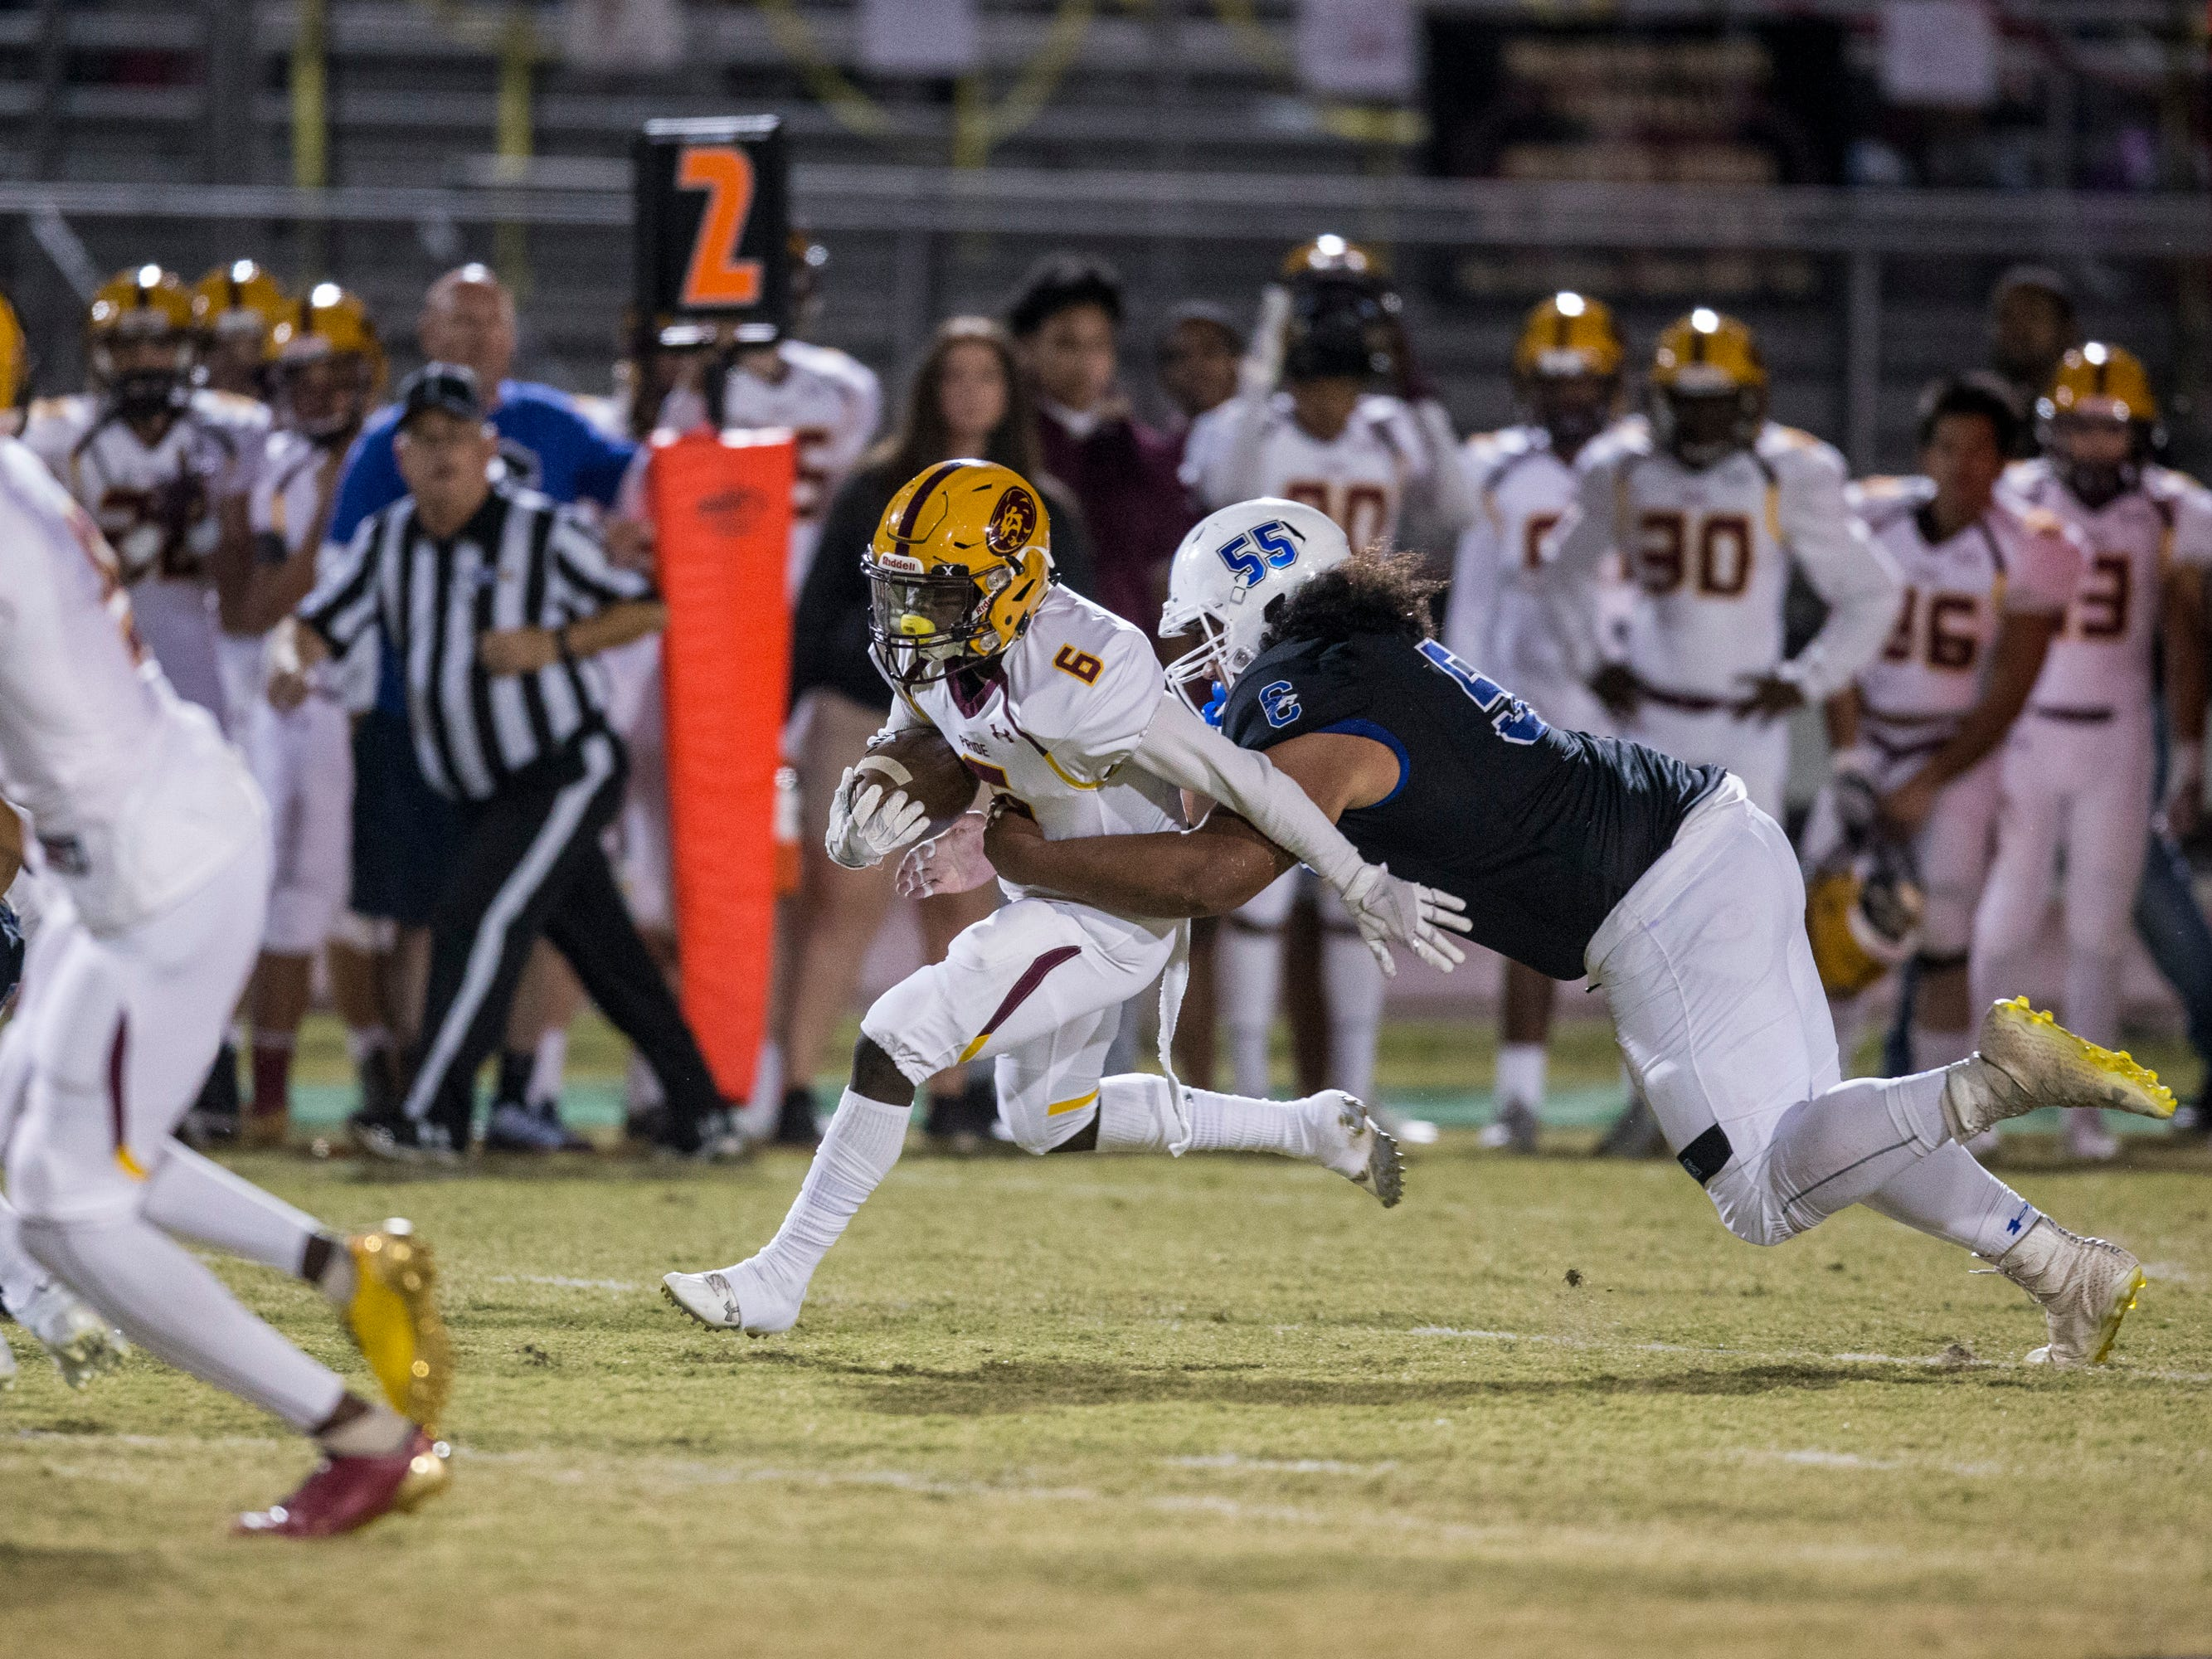 Mountain Pointe's Jathan Washington runs after a catch against Chandler in the first half on Friday, Nov. 9, 2018, at Chandler High School in Chandler, Ariz.